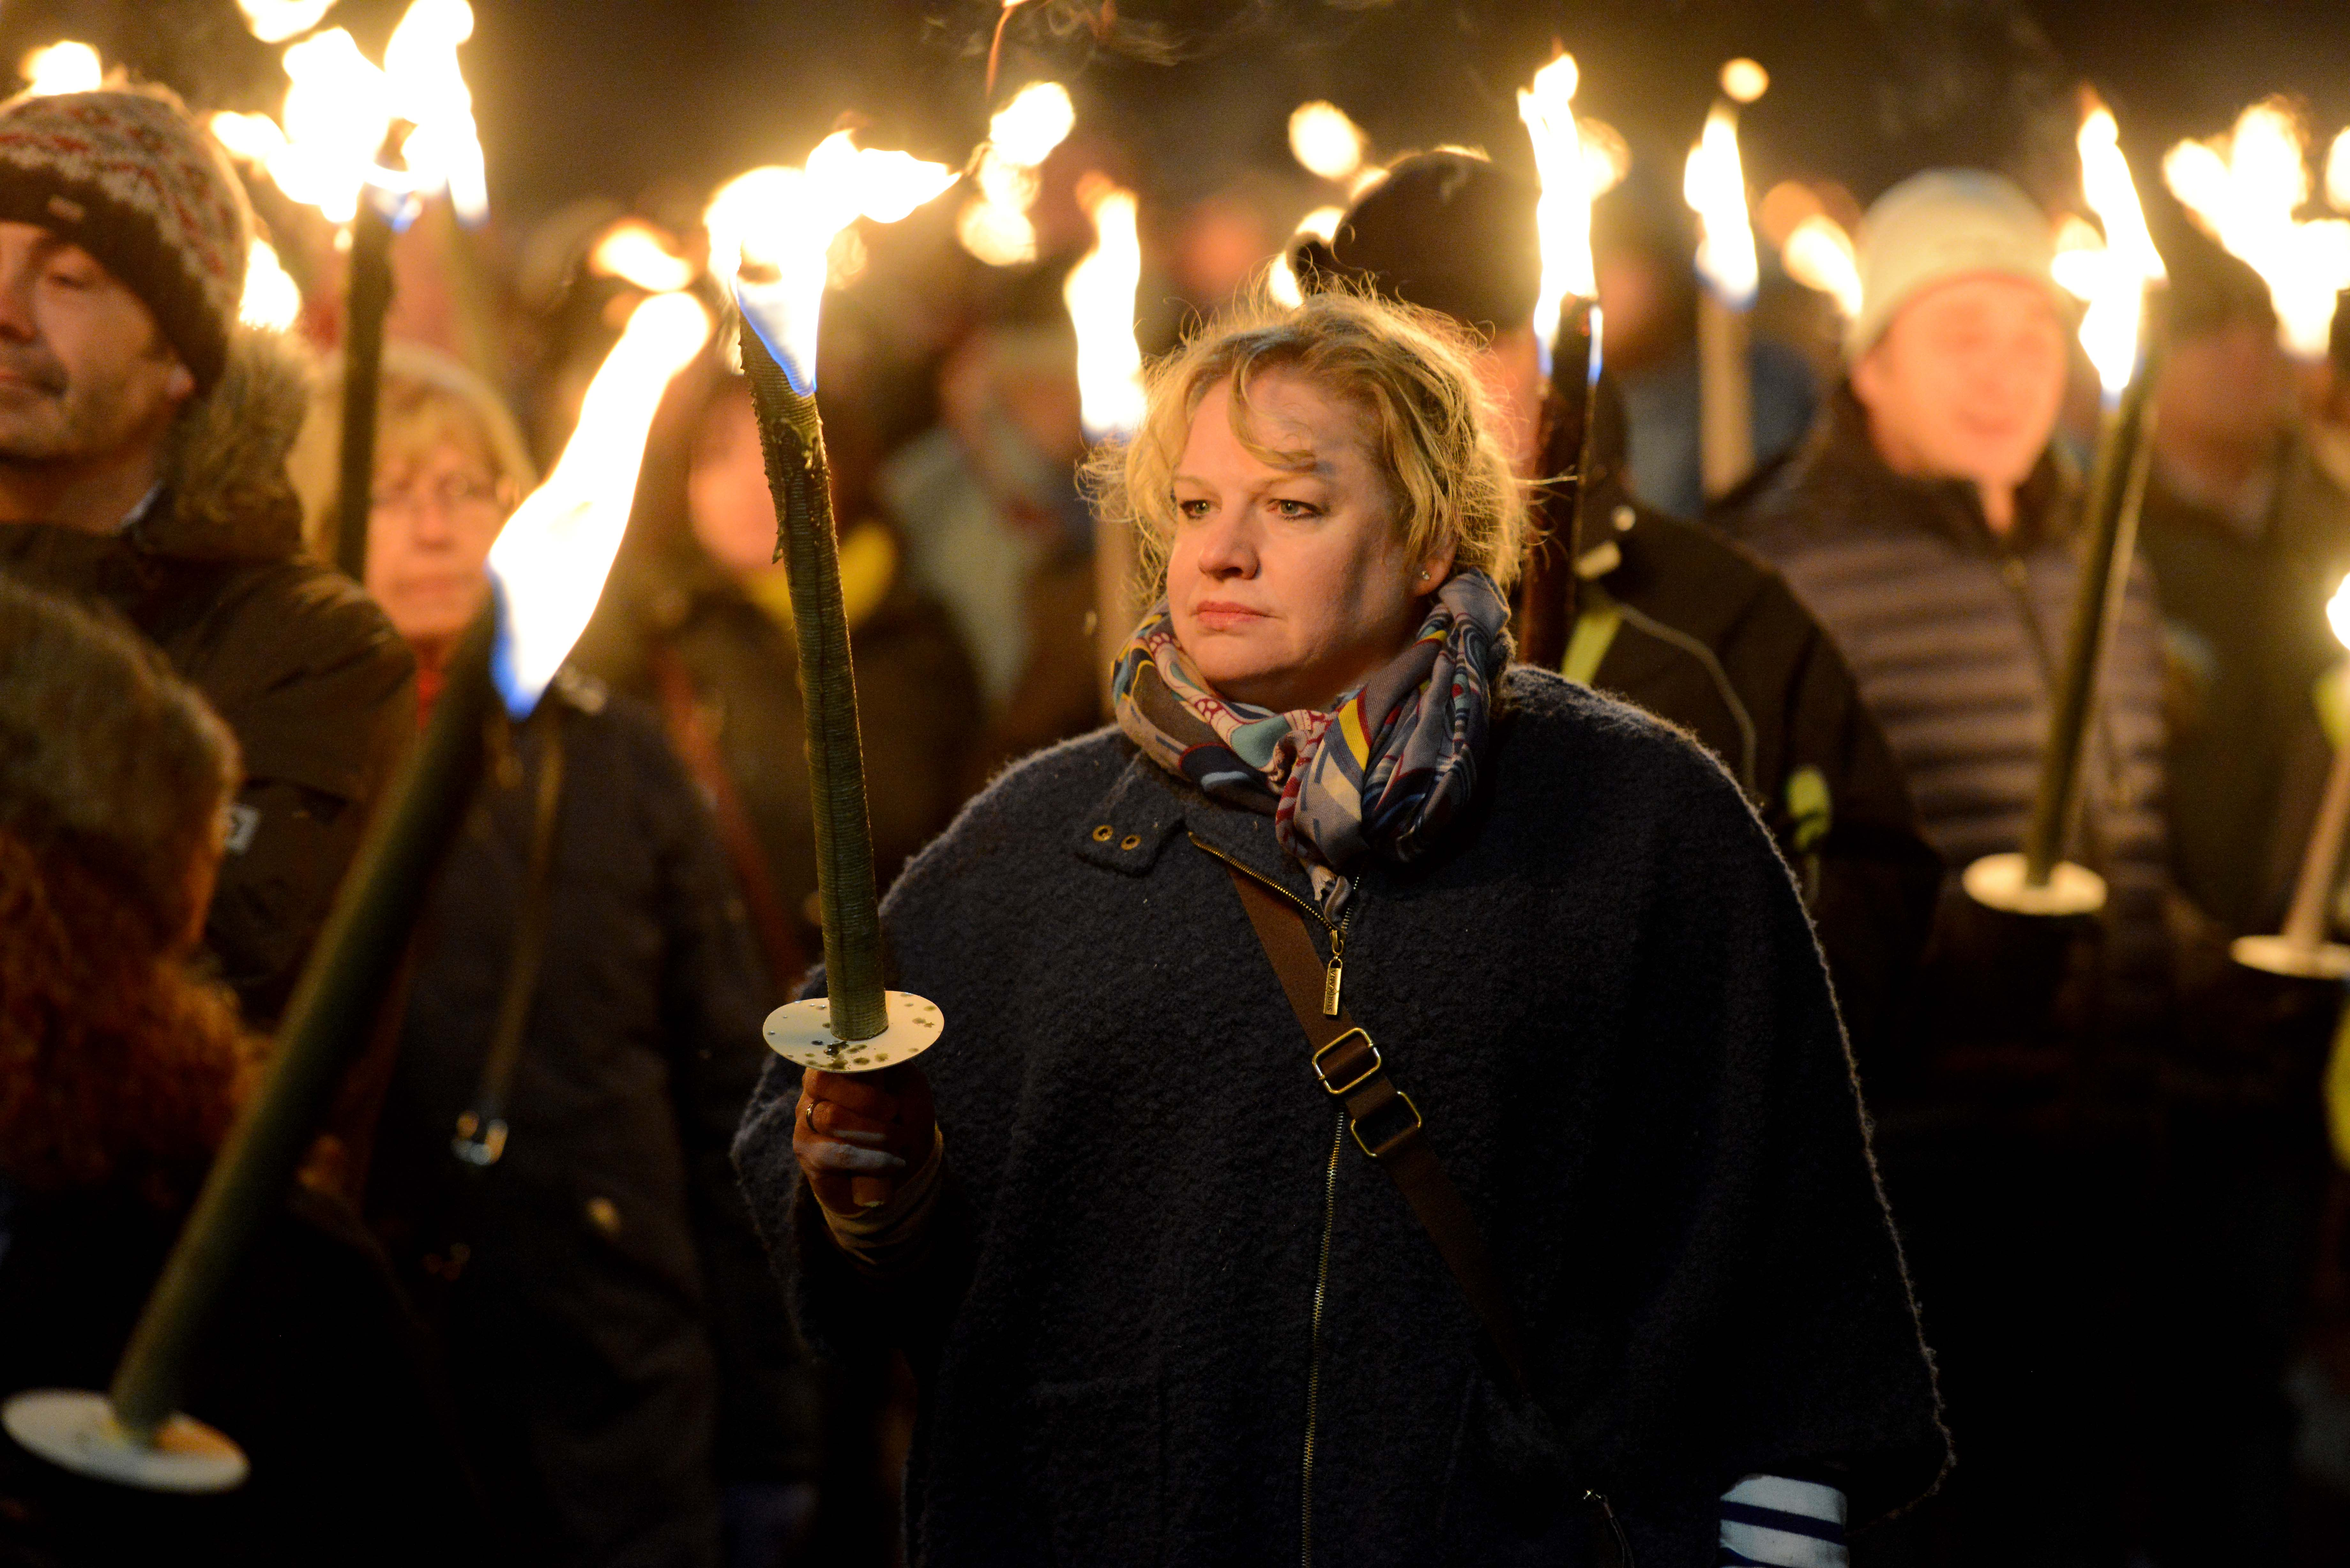 St Barnabas Torchlight Procession